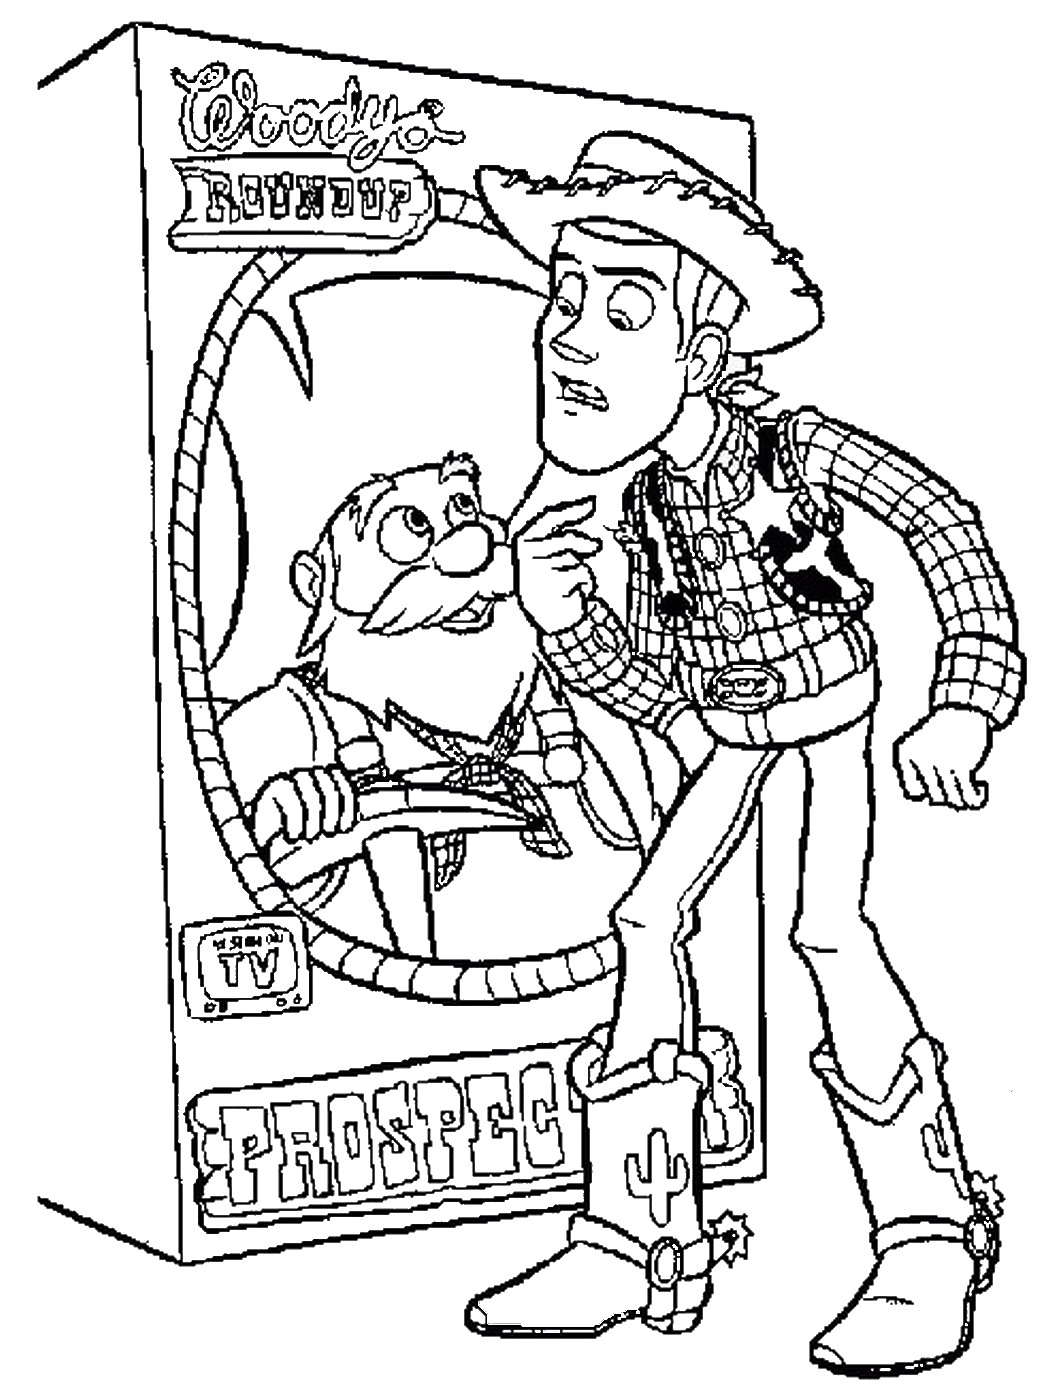 toy story 2 pictures to colour toy story coloring pages colour story pictures to 2 toy